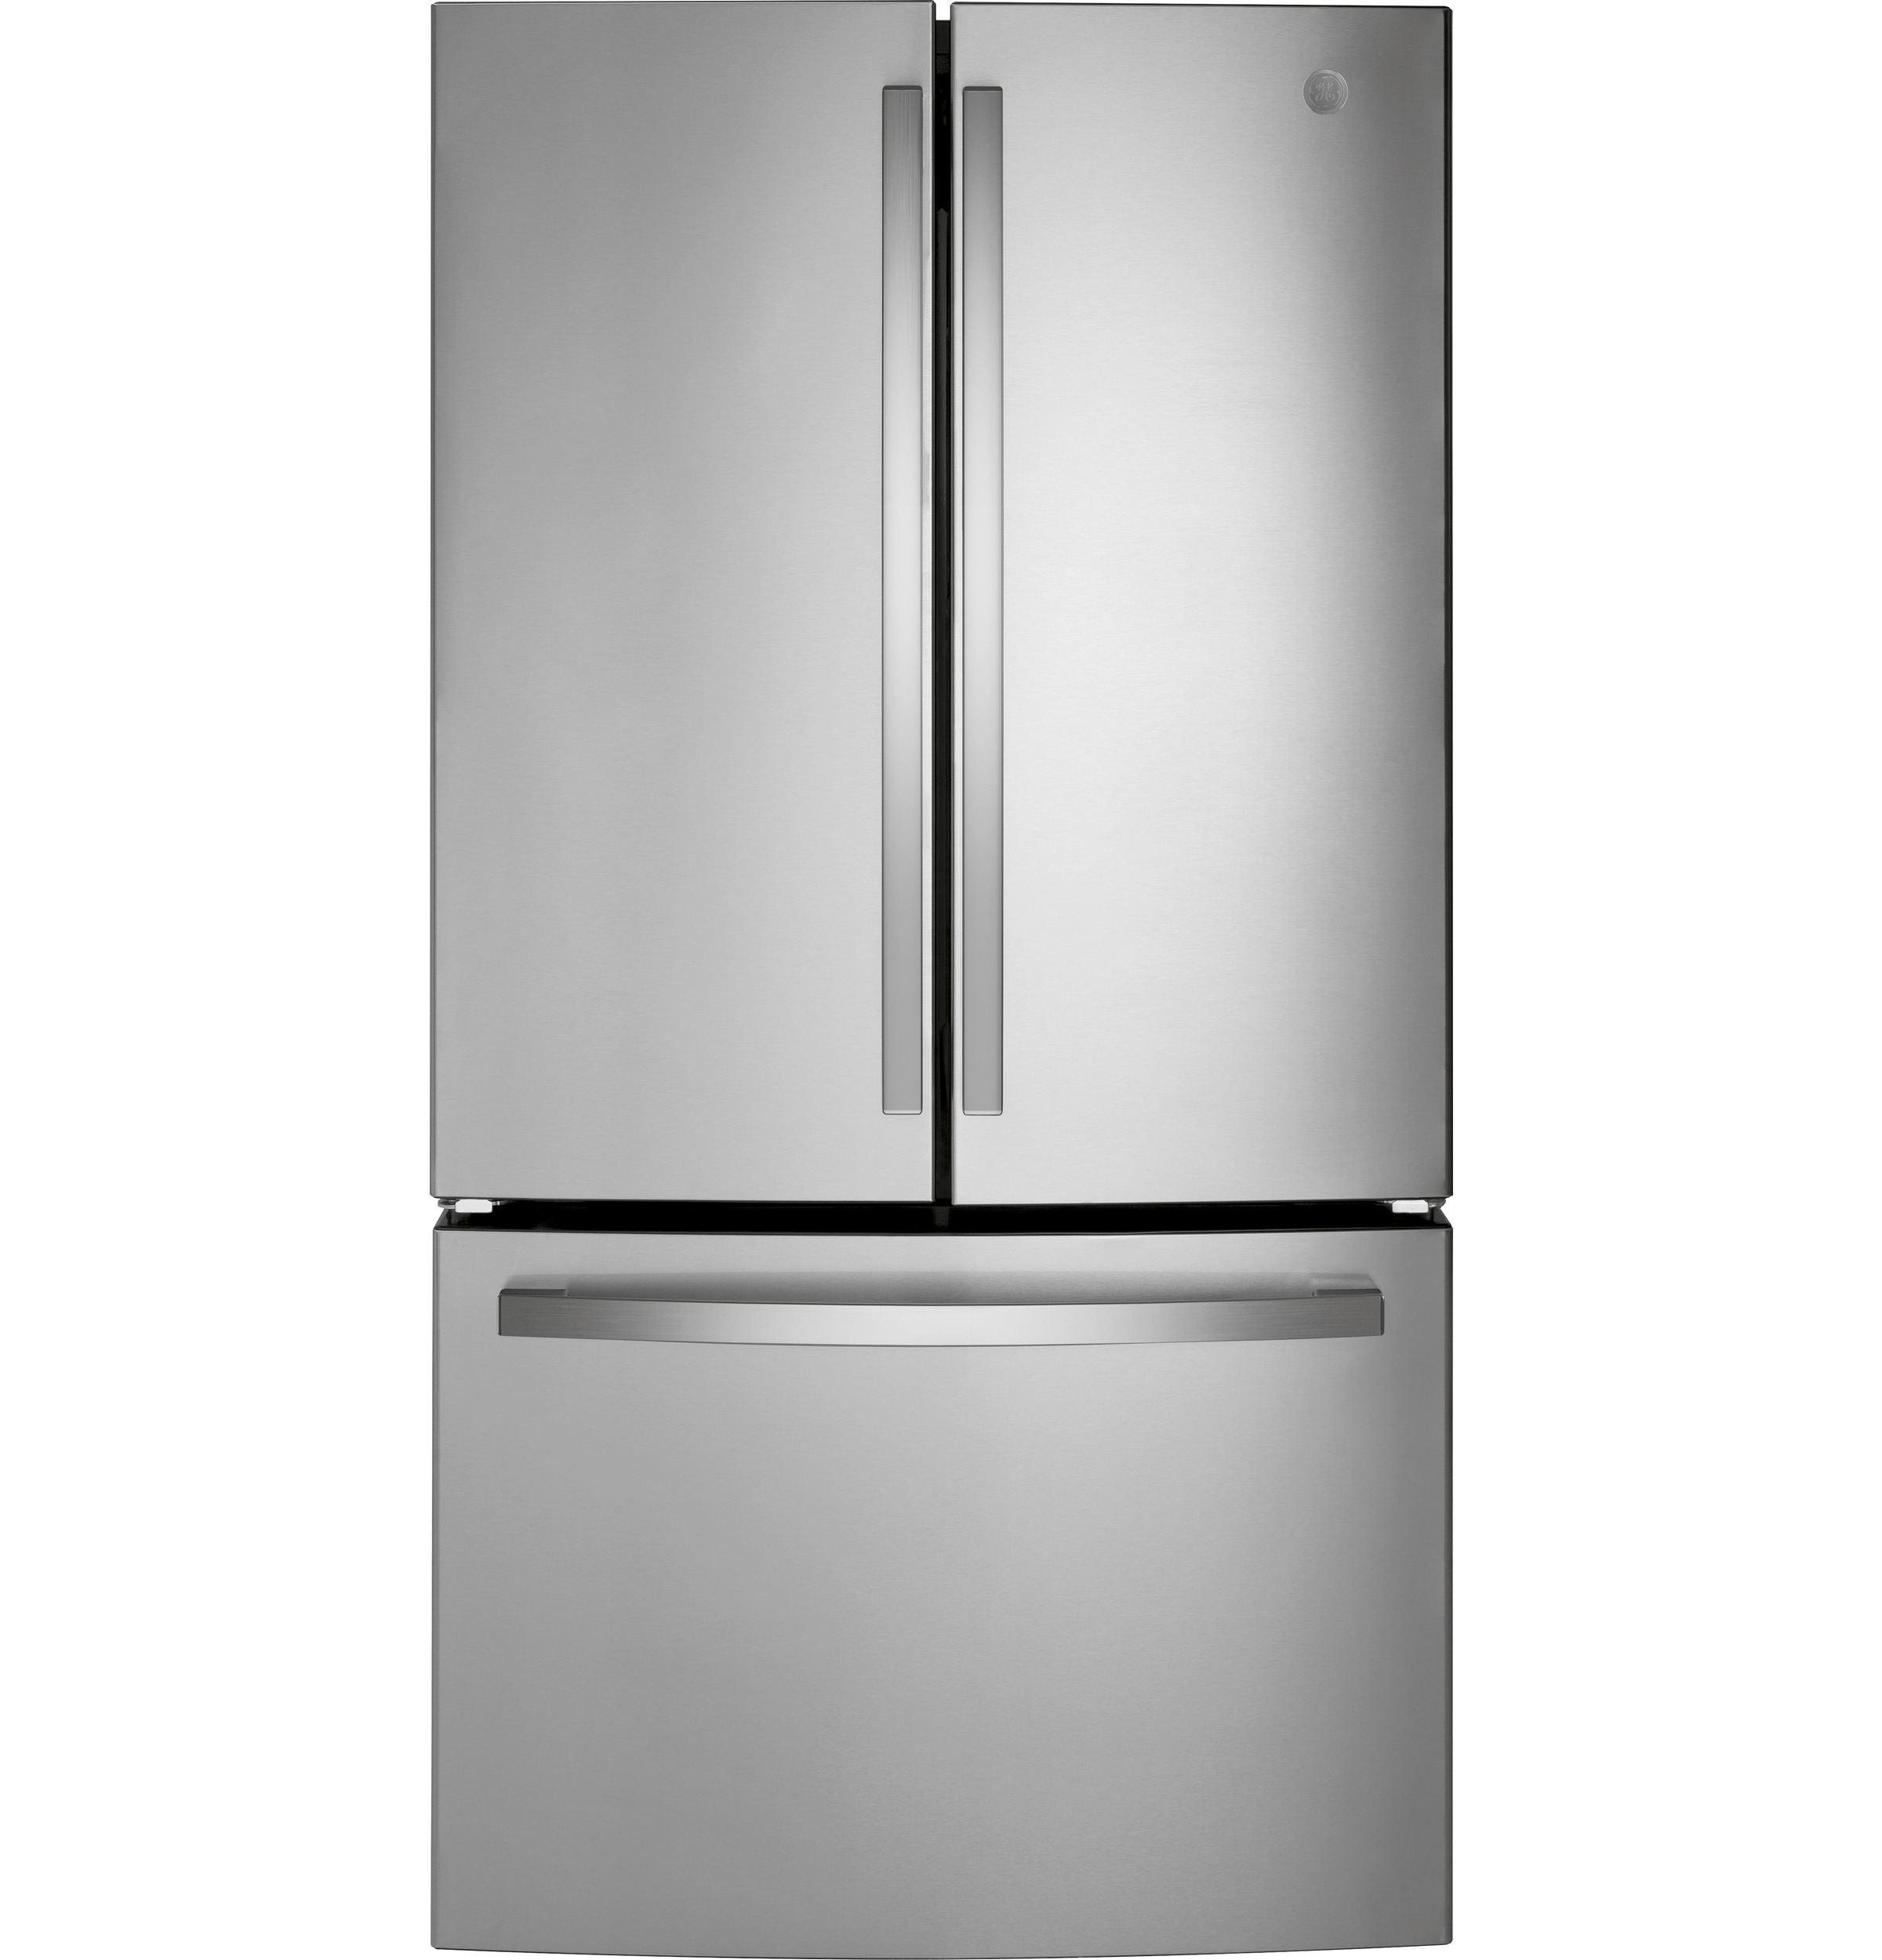 GE GE® ENERGY STAR® 27.0 Cu. Ft. Fingerprint Resistant French-Door Refrigerator